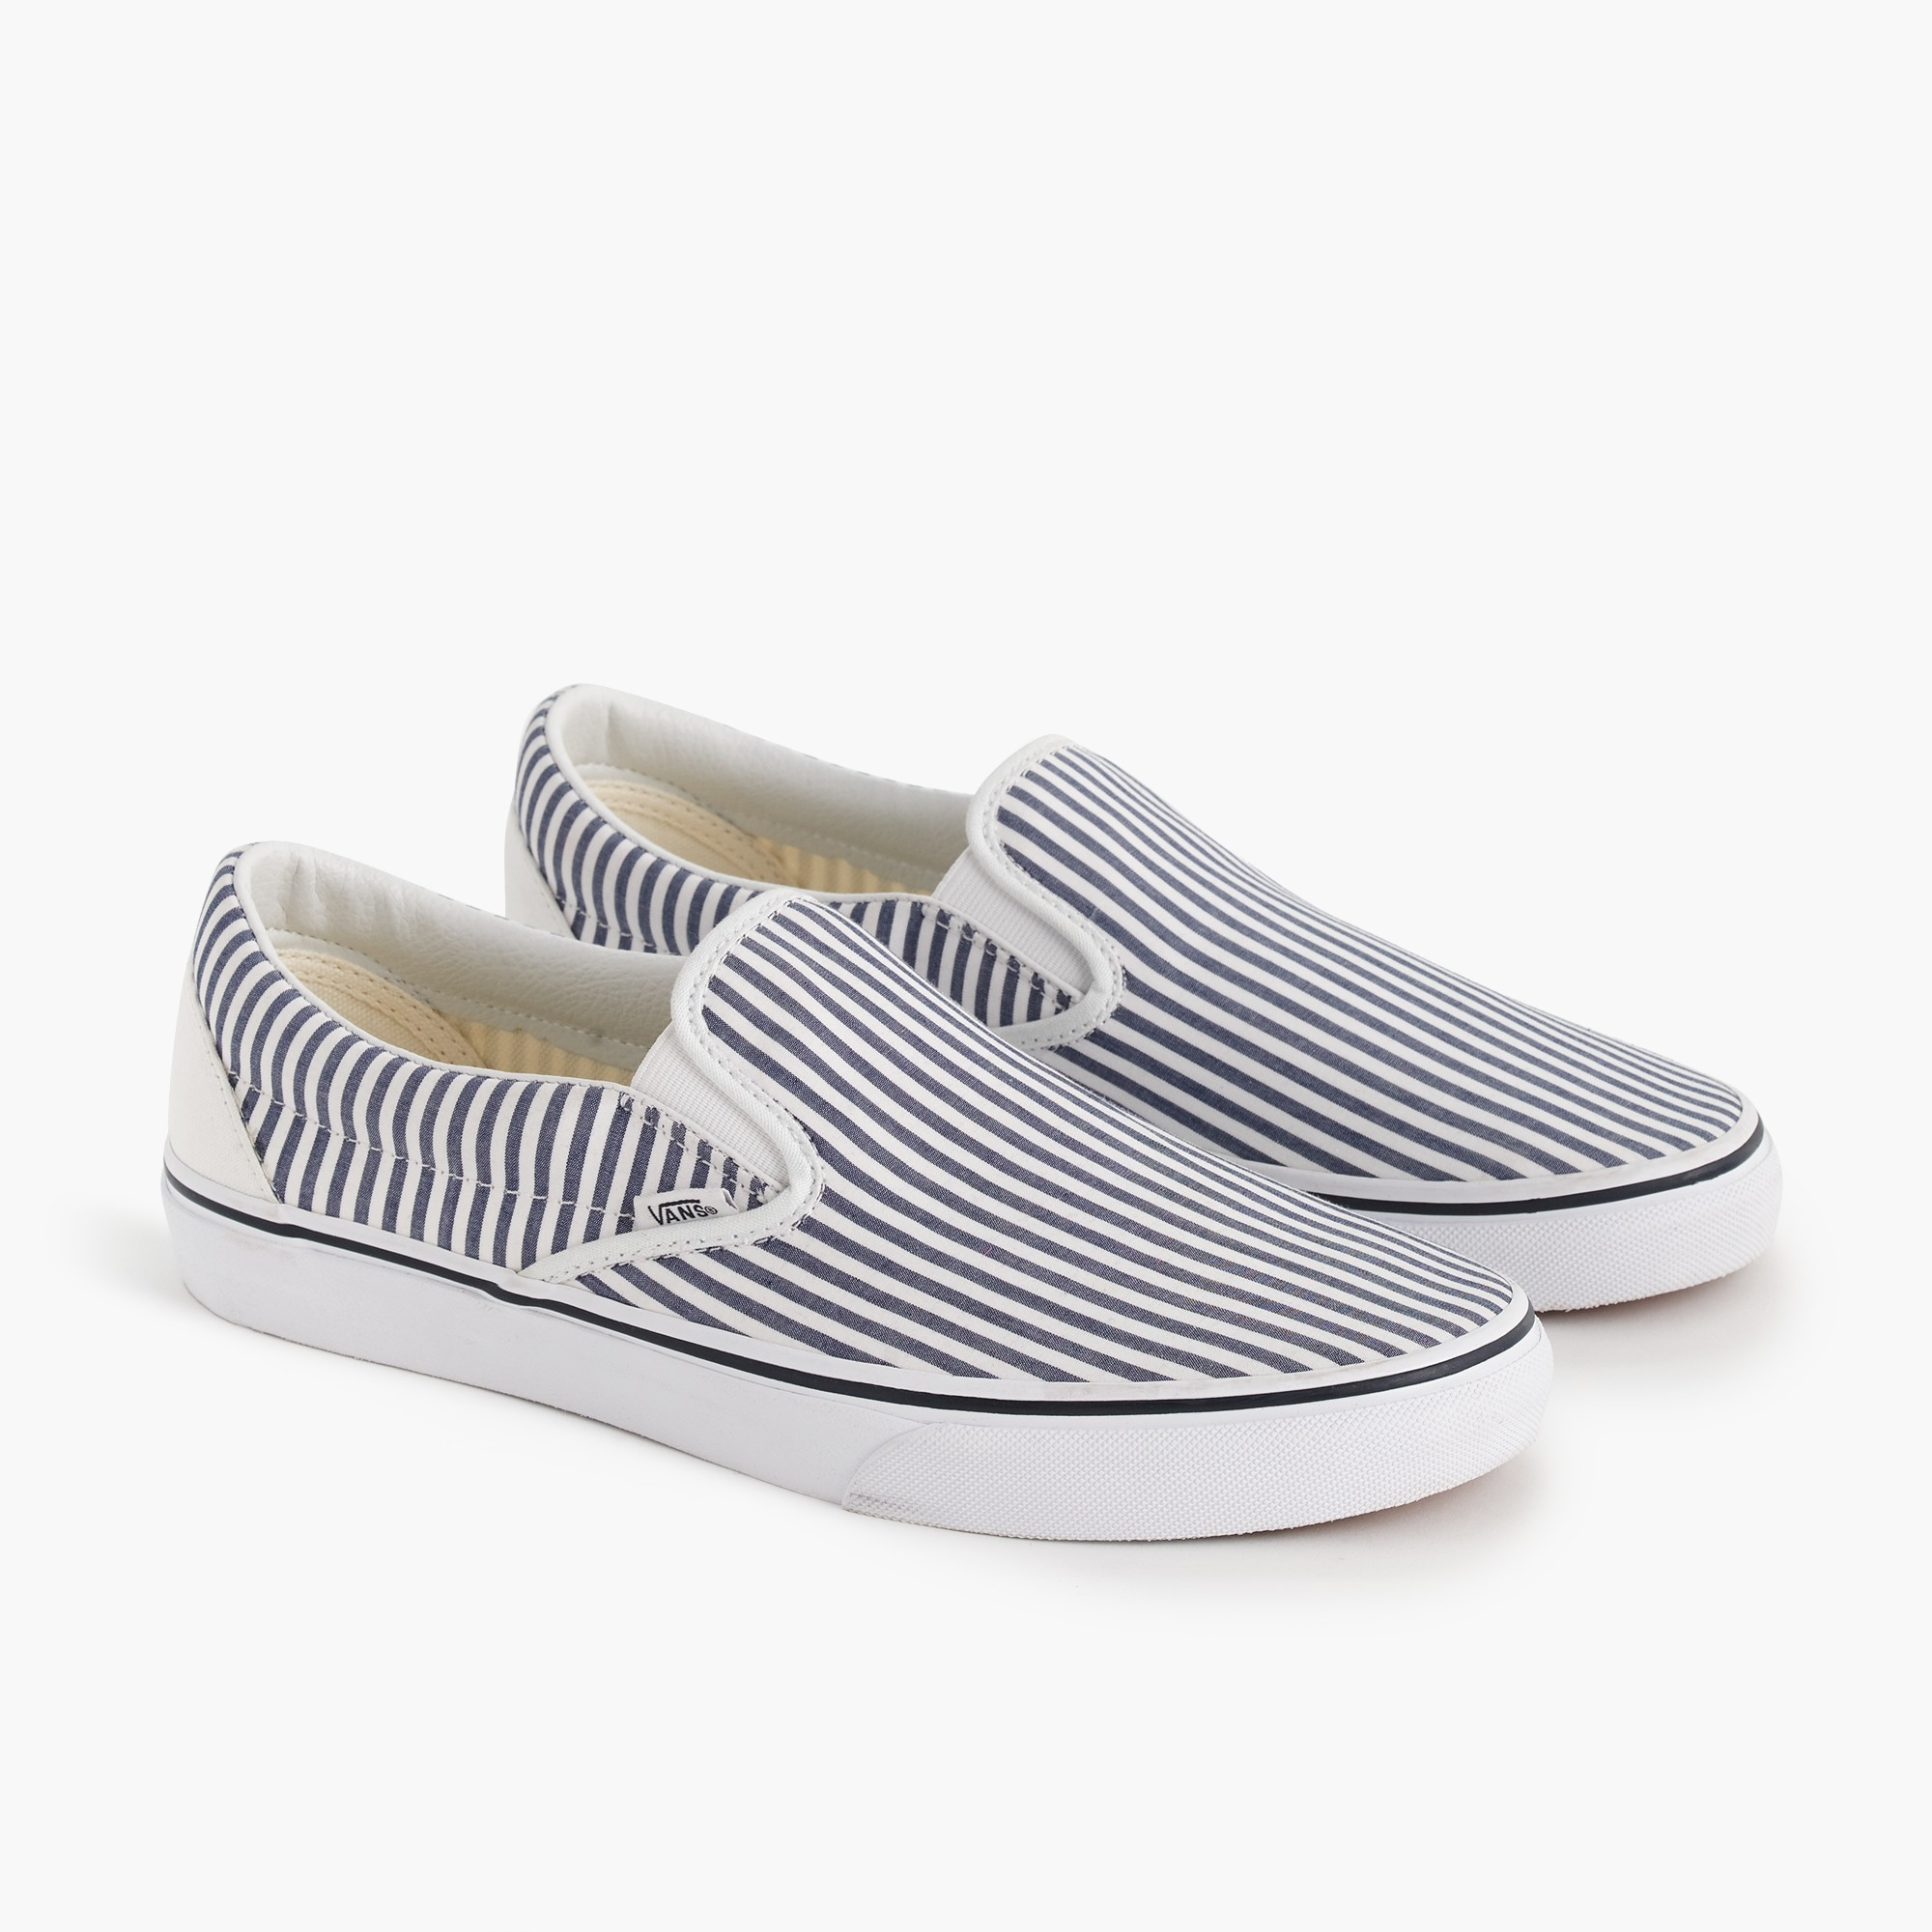 men's vans® for j.crew slip-on sneakers in seersucker stripe